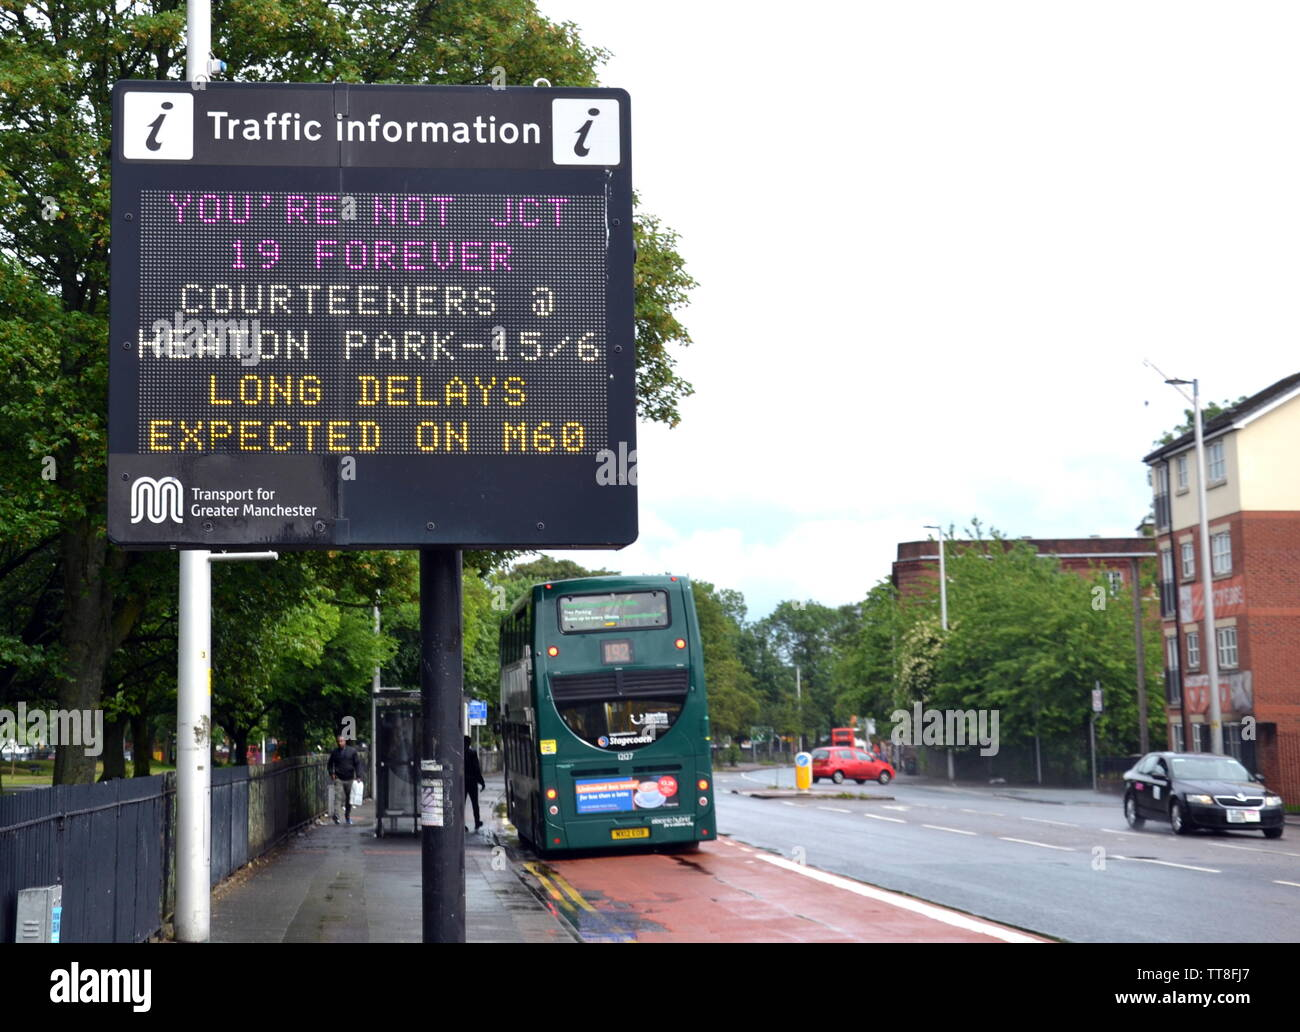 A Manchester, uk, traffic information sign on Ardwick Green South announces the Courteeners concert at Heaton Park, Manchester on June 15, 2019. with a pun on their iconic hit song 'Not Nineteen Forever' : 'You're Not JCT 19 Forever'. The concert has attracted 50,000 fans. Manchester transport chiefs have asked fans to consider walking back to the city centre after the concert. - Stock Image